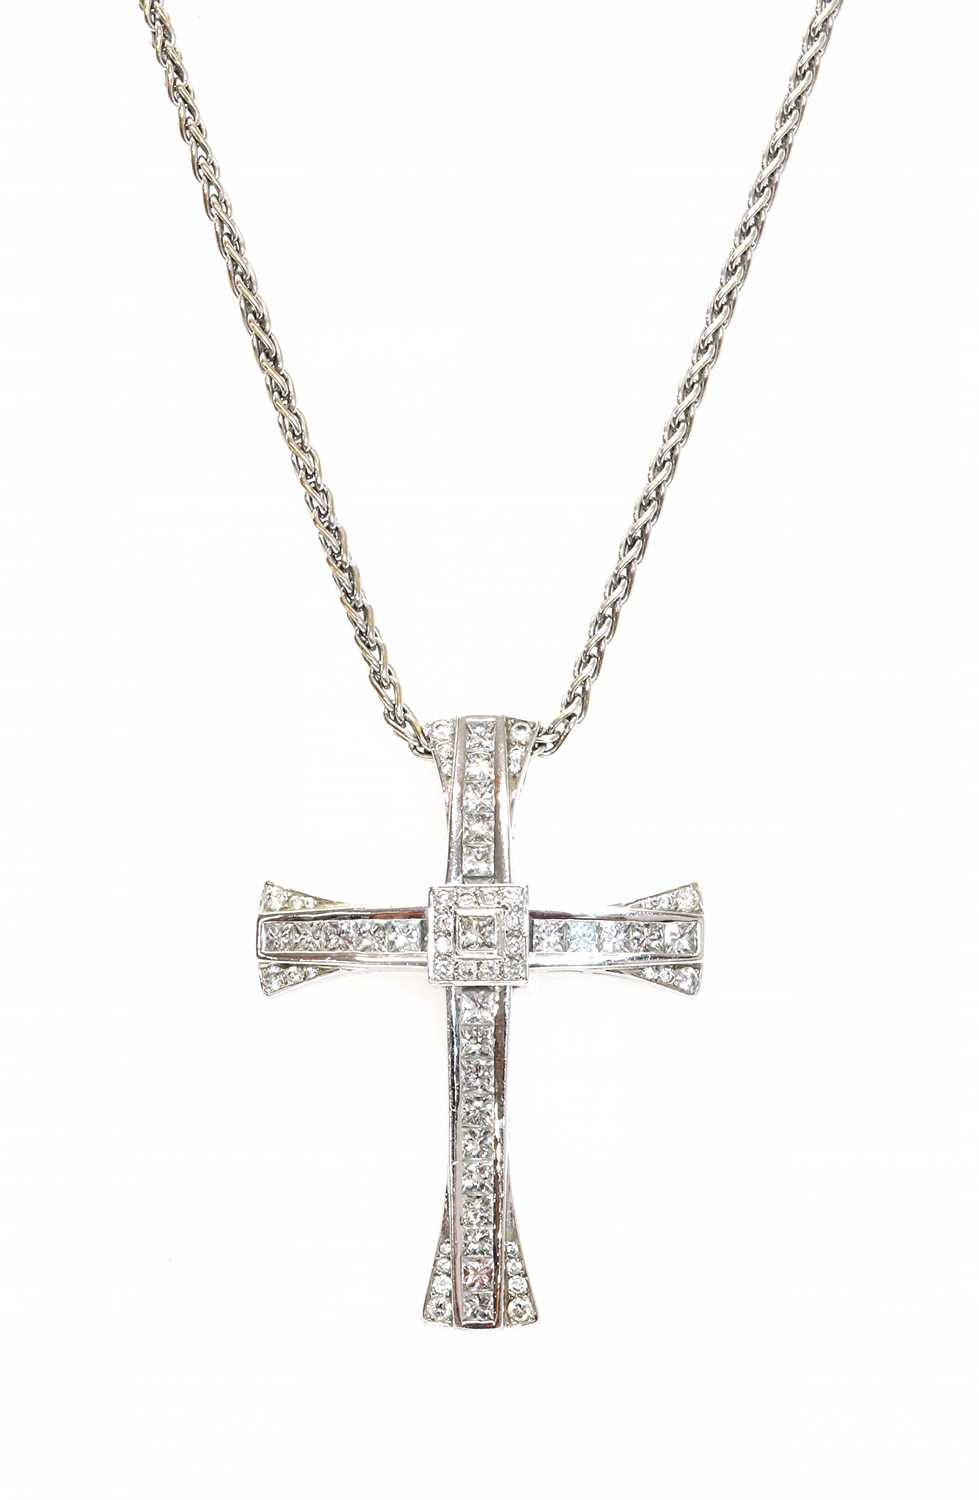 An 18ct white gold diamond set cross and chain,